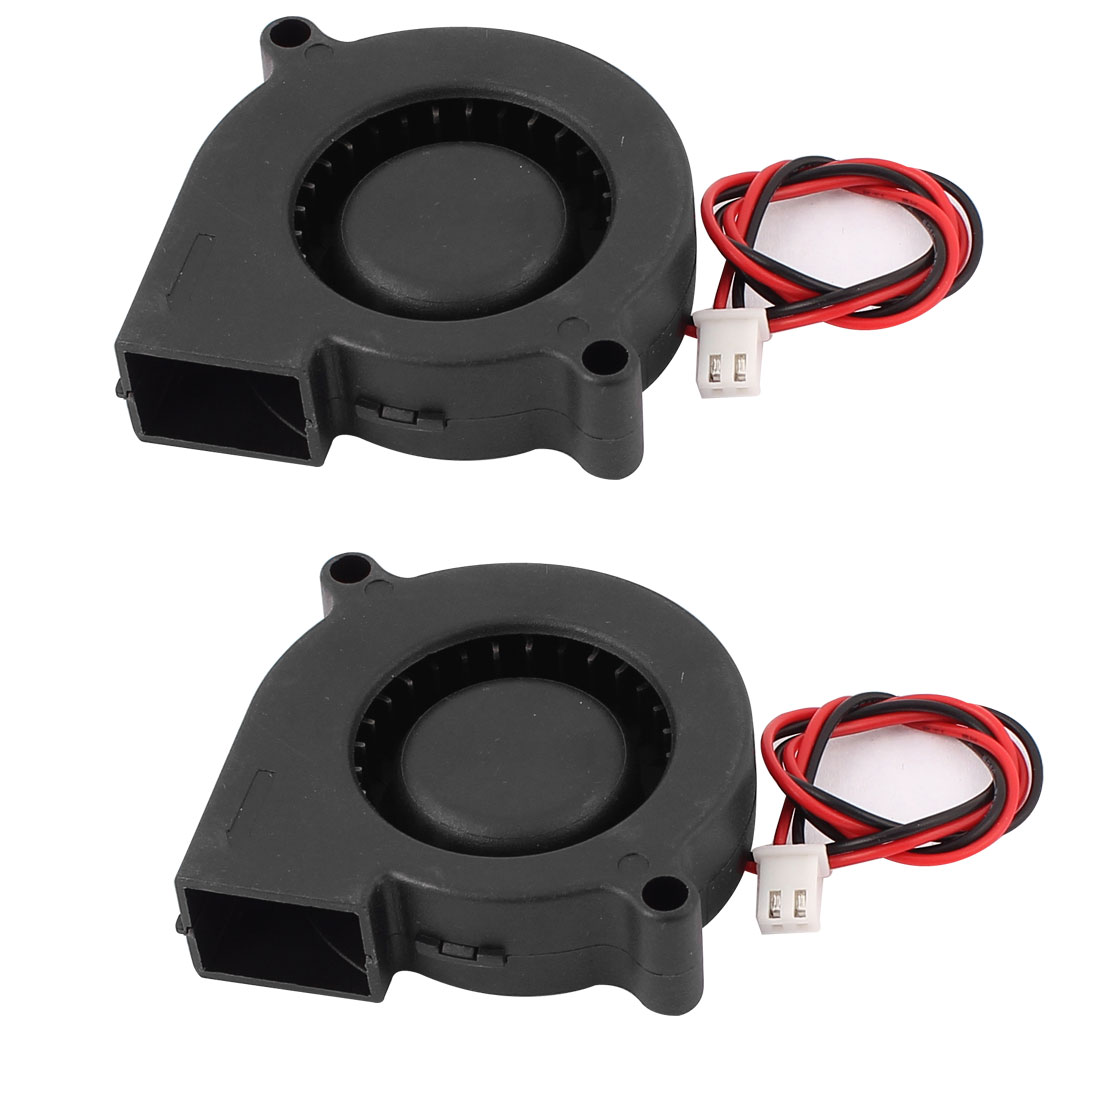 DC 12V 0.12A 2P Sleeve Bearing Brushless Cooling Turbo Blower Fan Cooler 2pcs